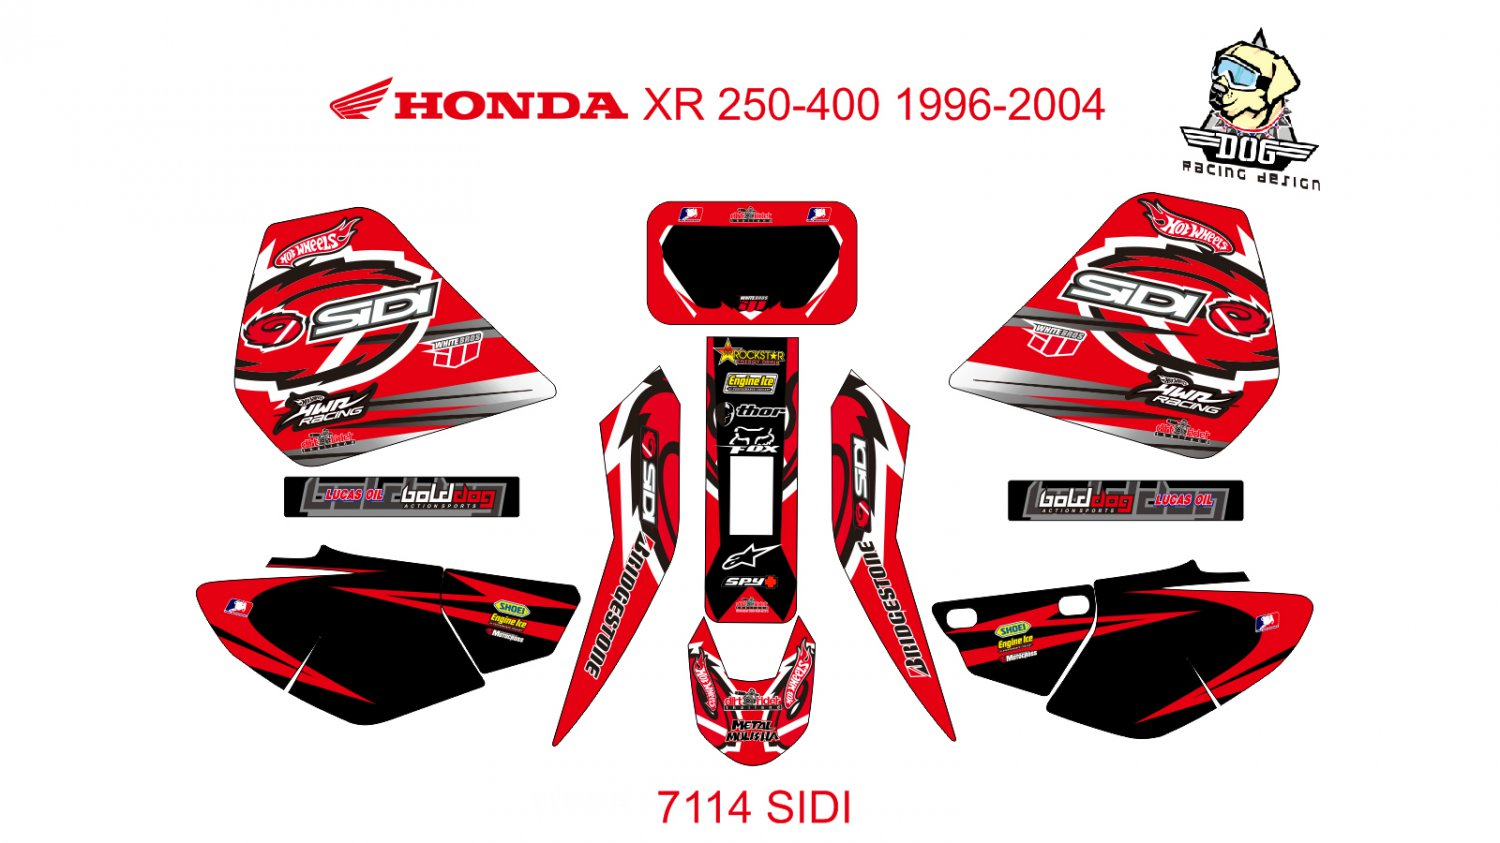 HONDA XR 250-400 1996-2004 GRAPHIC DECAL KIT CODE.7114